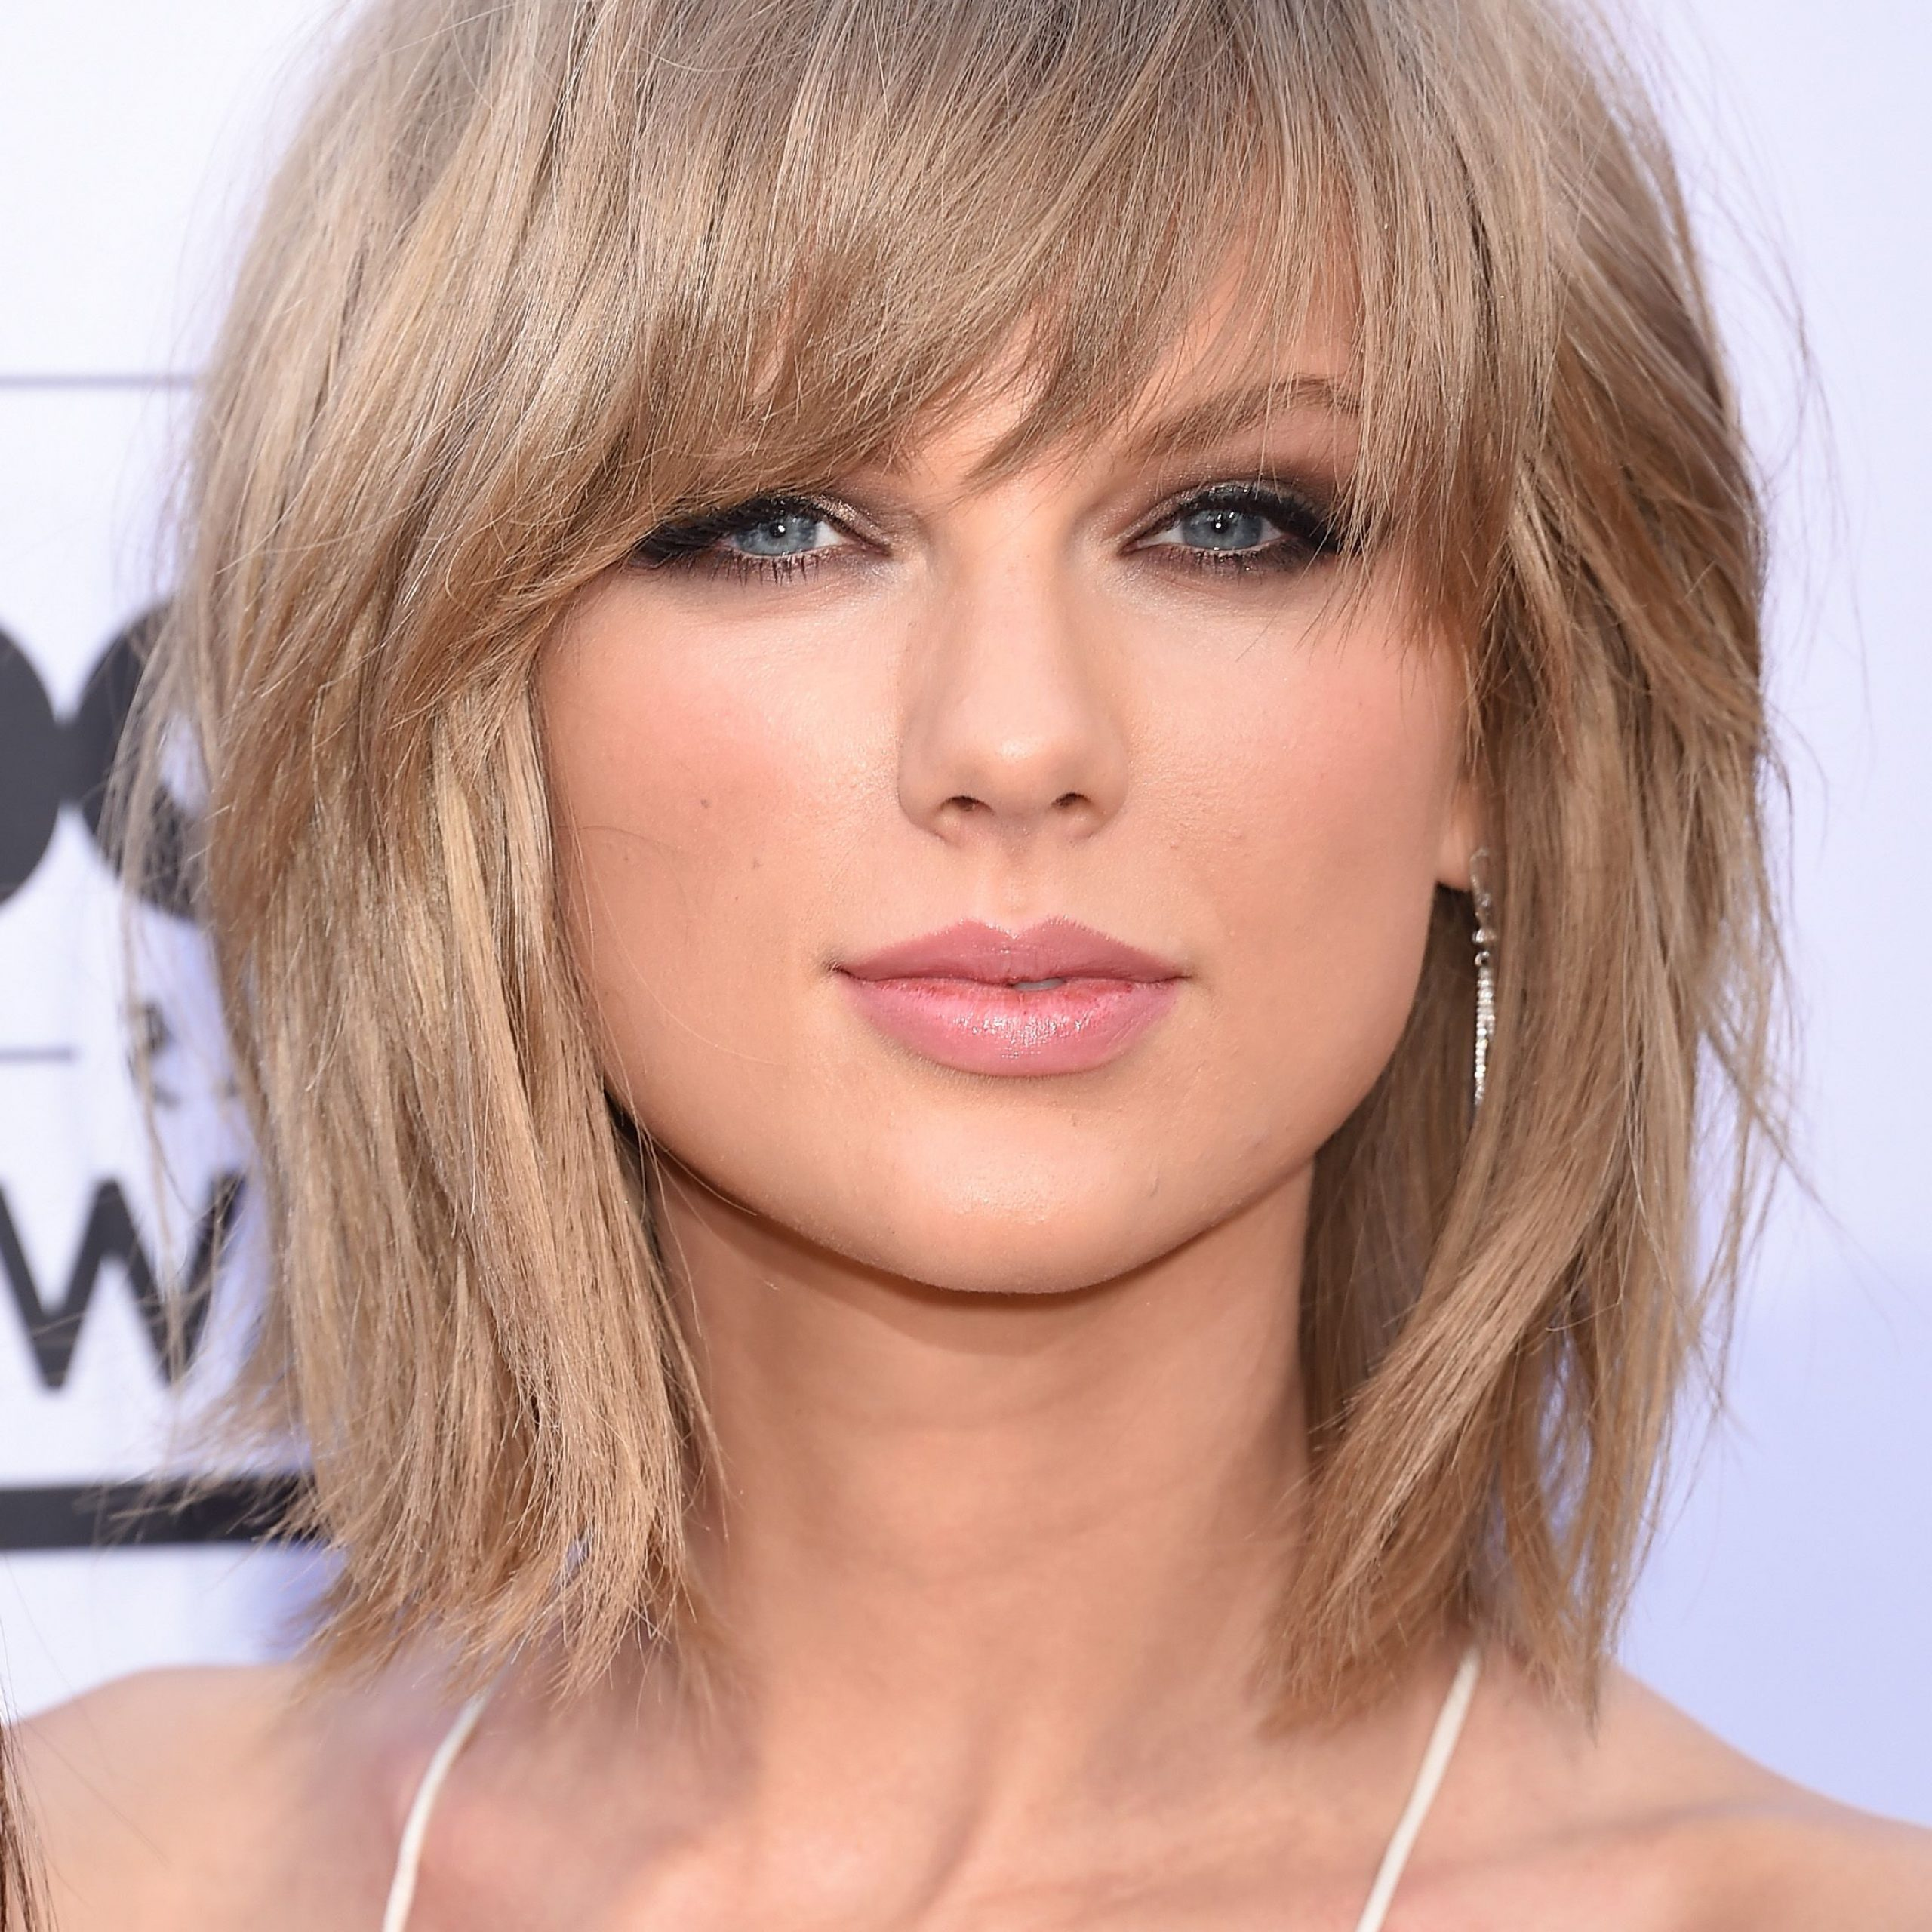 Medium Styles With Bangs – A Step By Step Guide